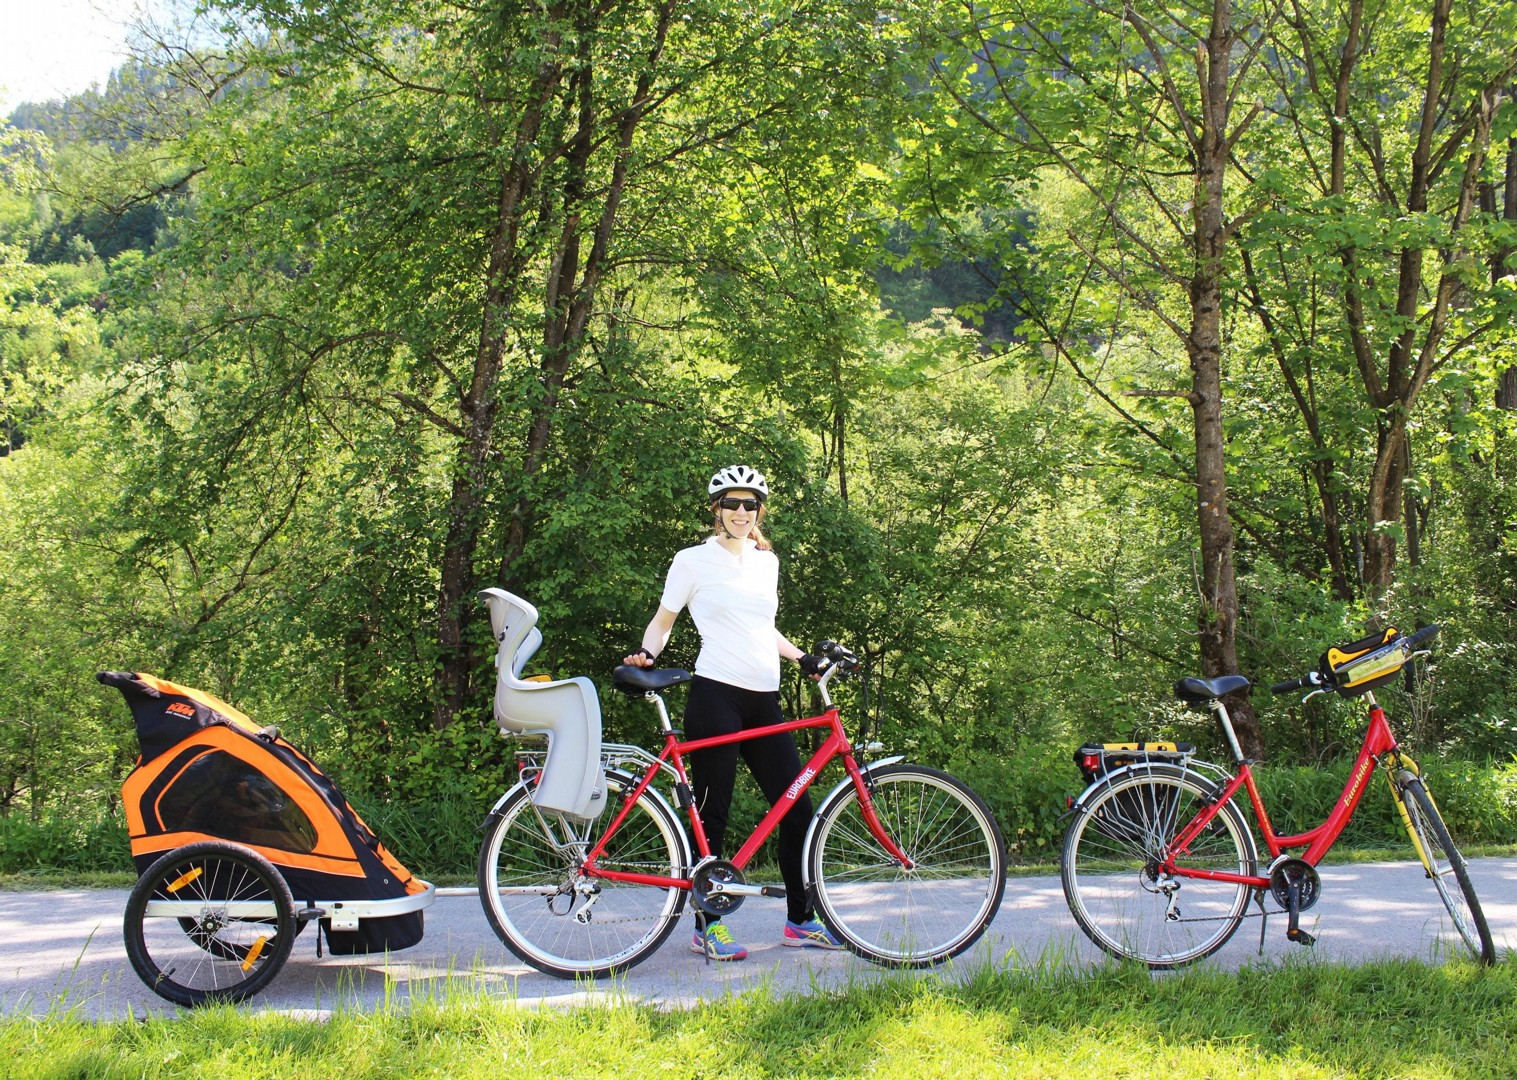 self-guided-family-cycling-holiday-valleys.jpg - Austria - Tyrolean Valleys - Family Cycling